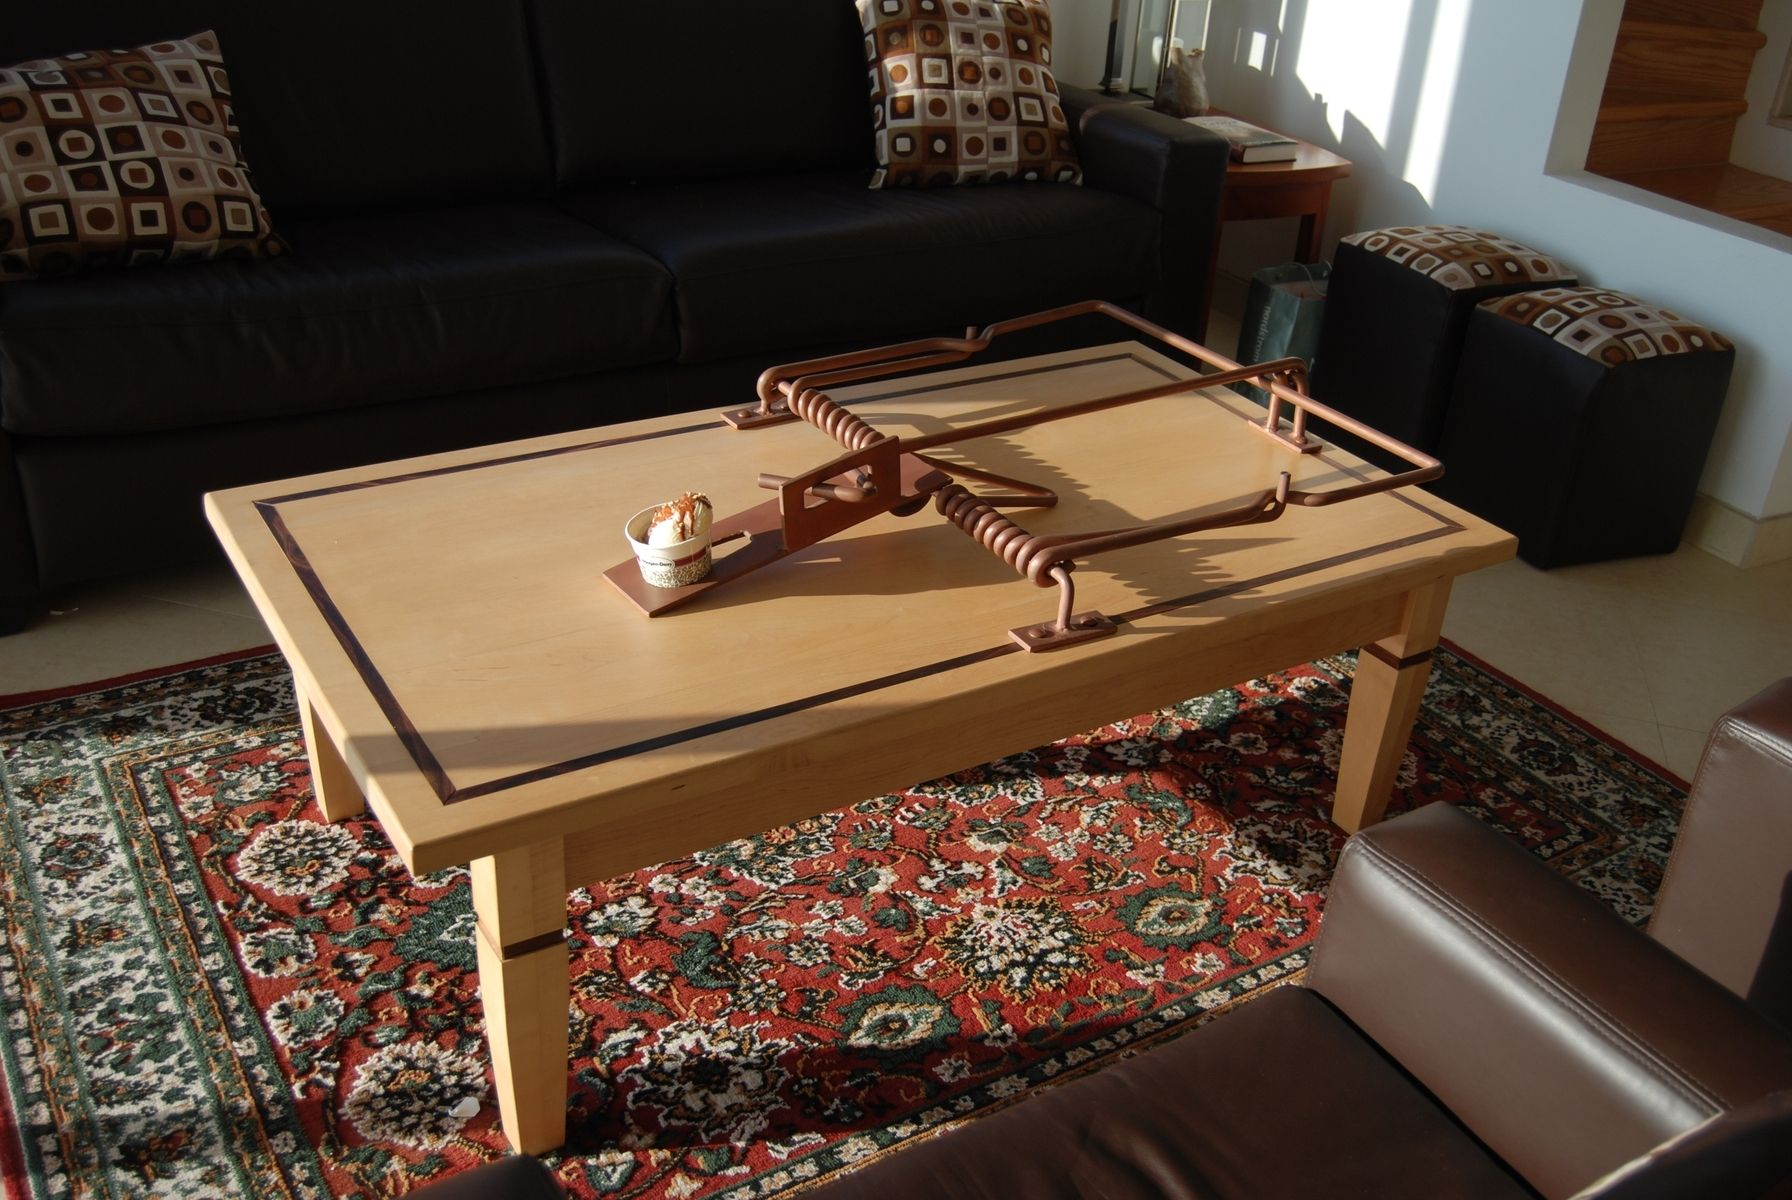 custom mousetrap coffee table by jose eguez ebanista. Black Bedroom Furniture Sets. Home Design Ideas